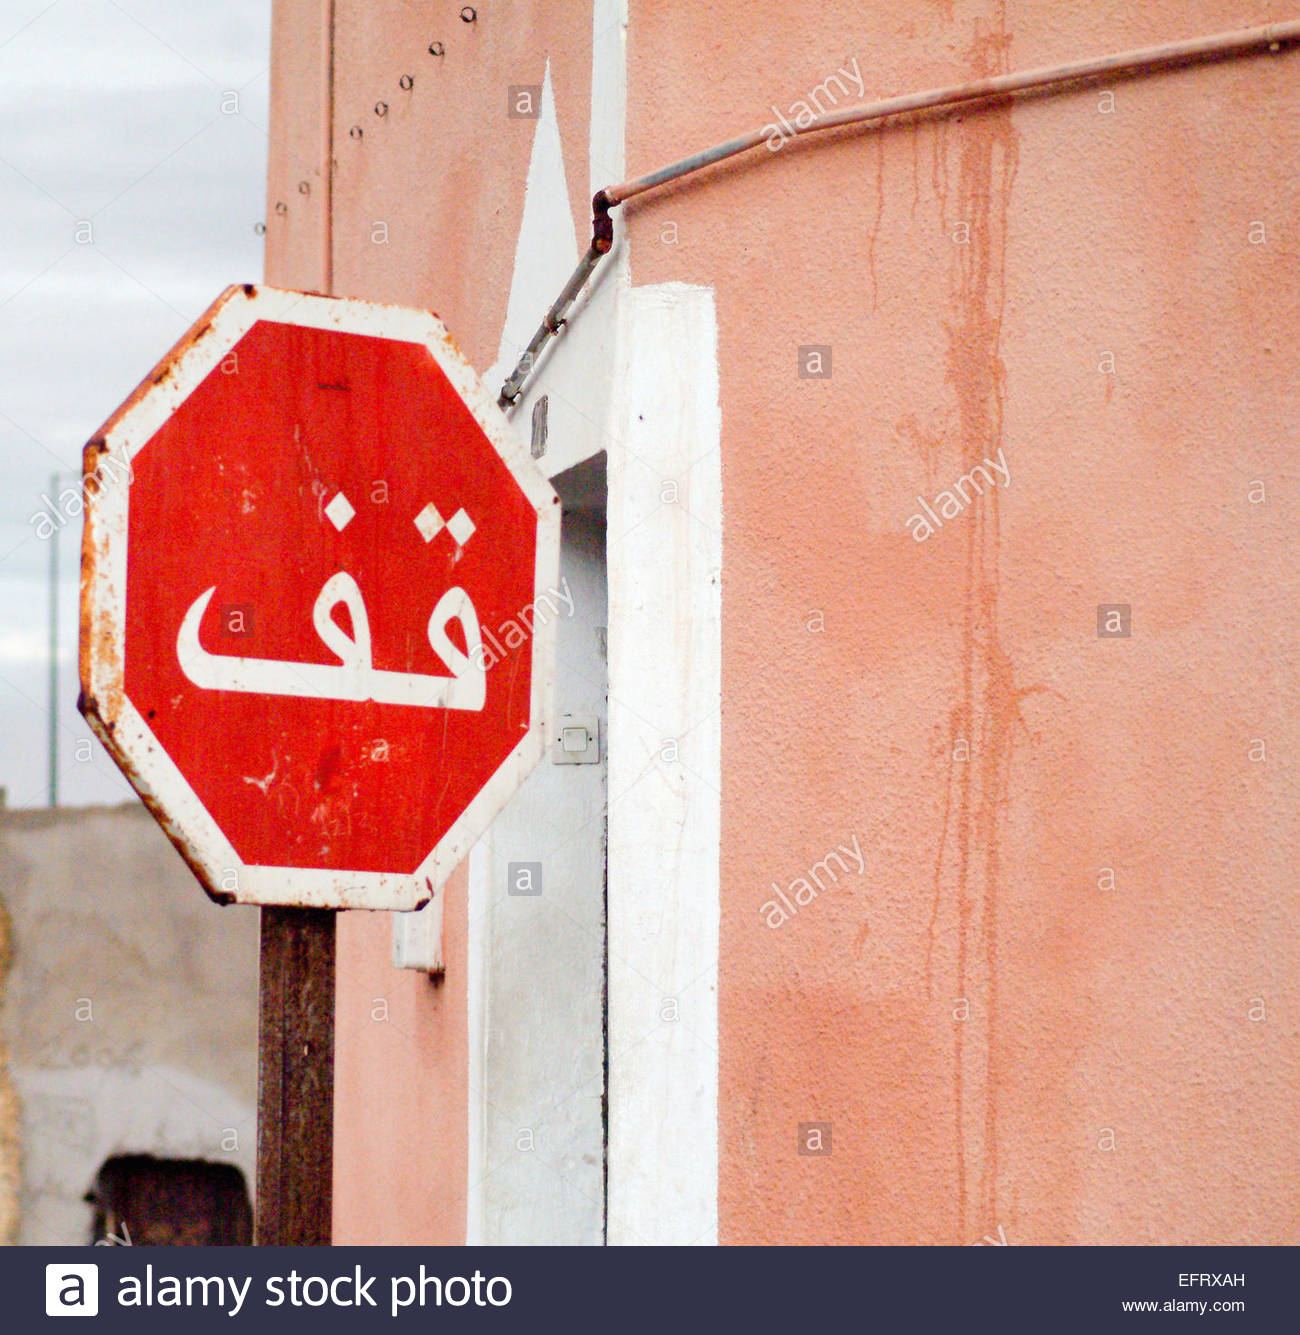 Stop Sign Arabic Script Writing Signpost Driving Conditions Western Sahara Spanish Sahara Sahara Espanol EH ESH - Stock Image